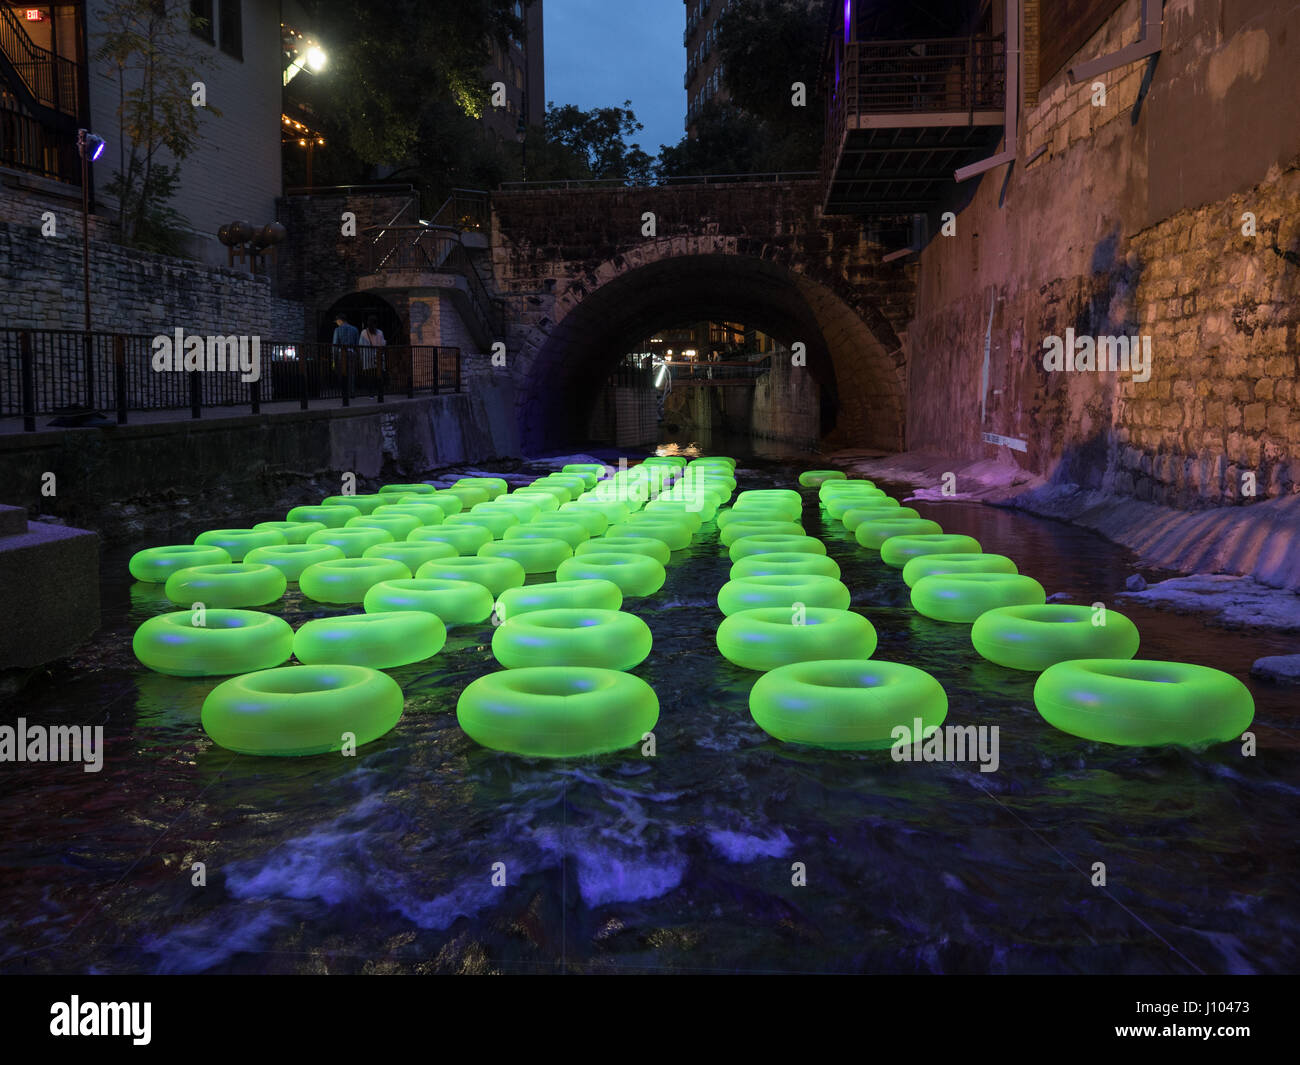 "Public art exhibit ""Floating the Waller"" by Ten Eyck at the 2016 Waller Creek Show in Austin, Texas - Stock Image"